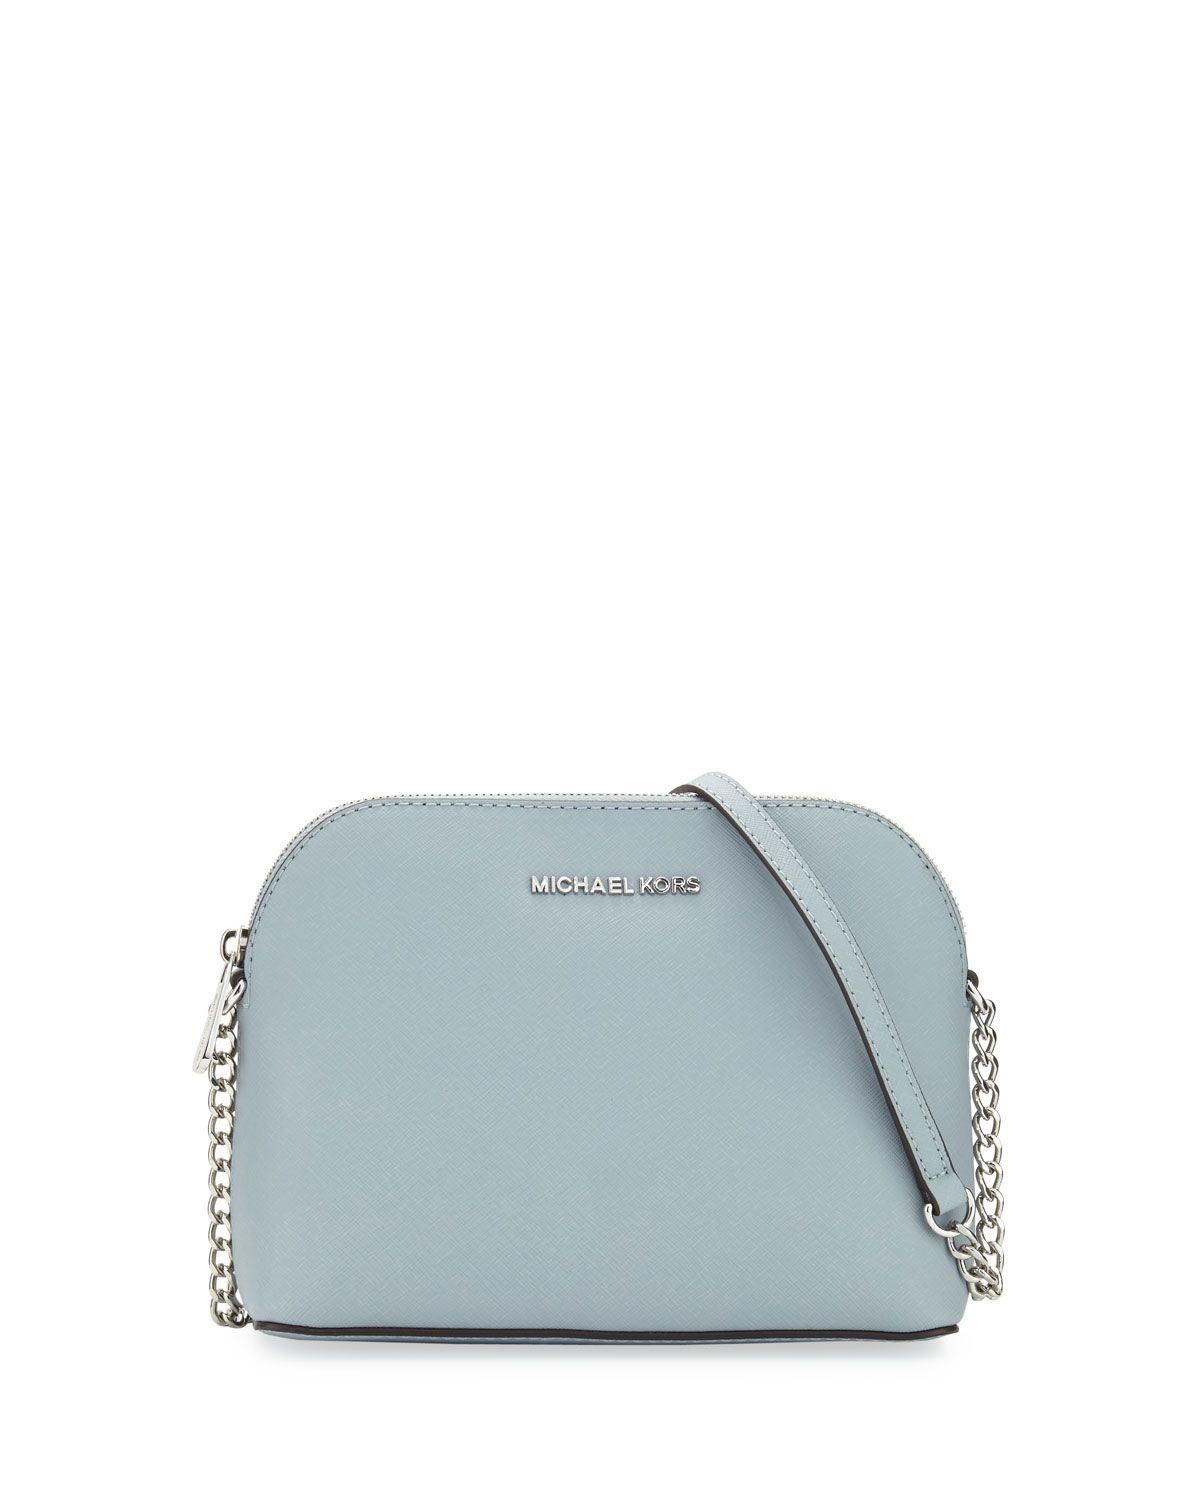 c5593a799983 Cindy Large Dome Crossbody Bag Dusty Blue | Pinterest buyable things ...